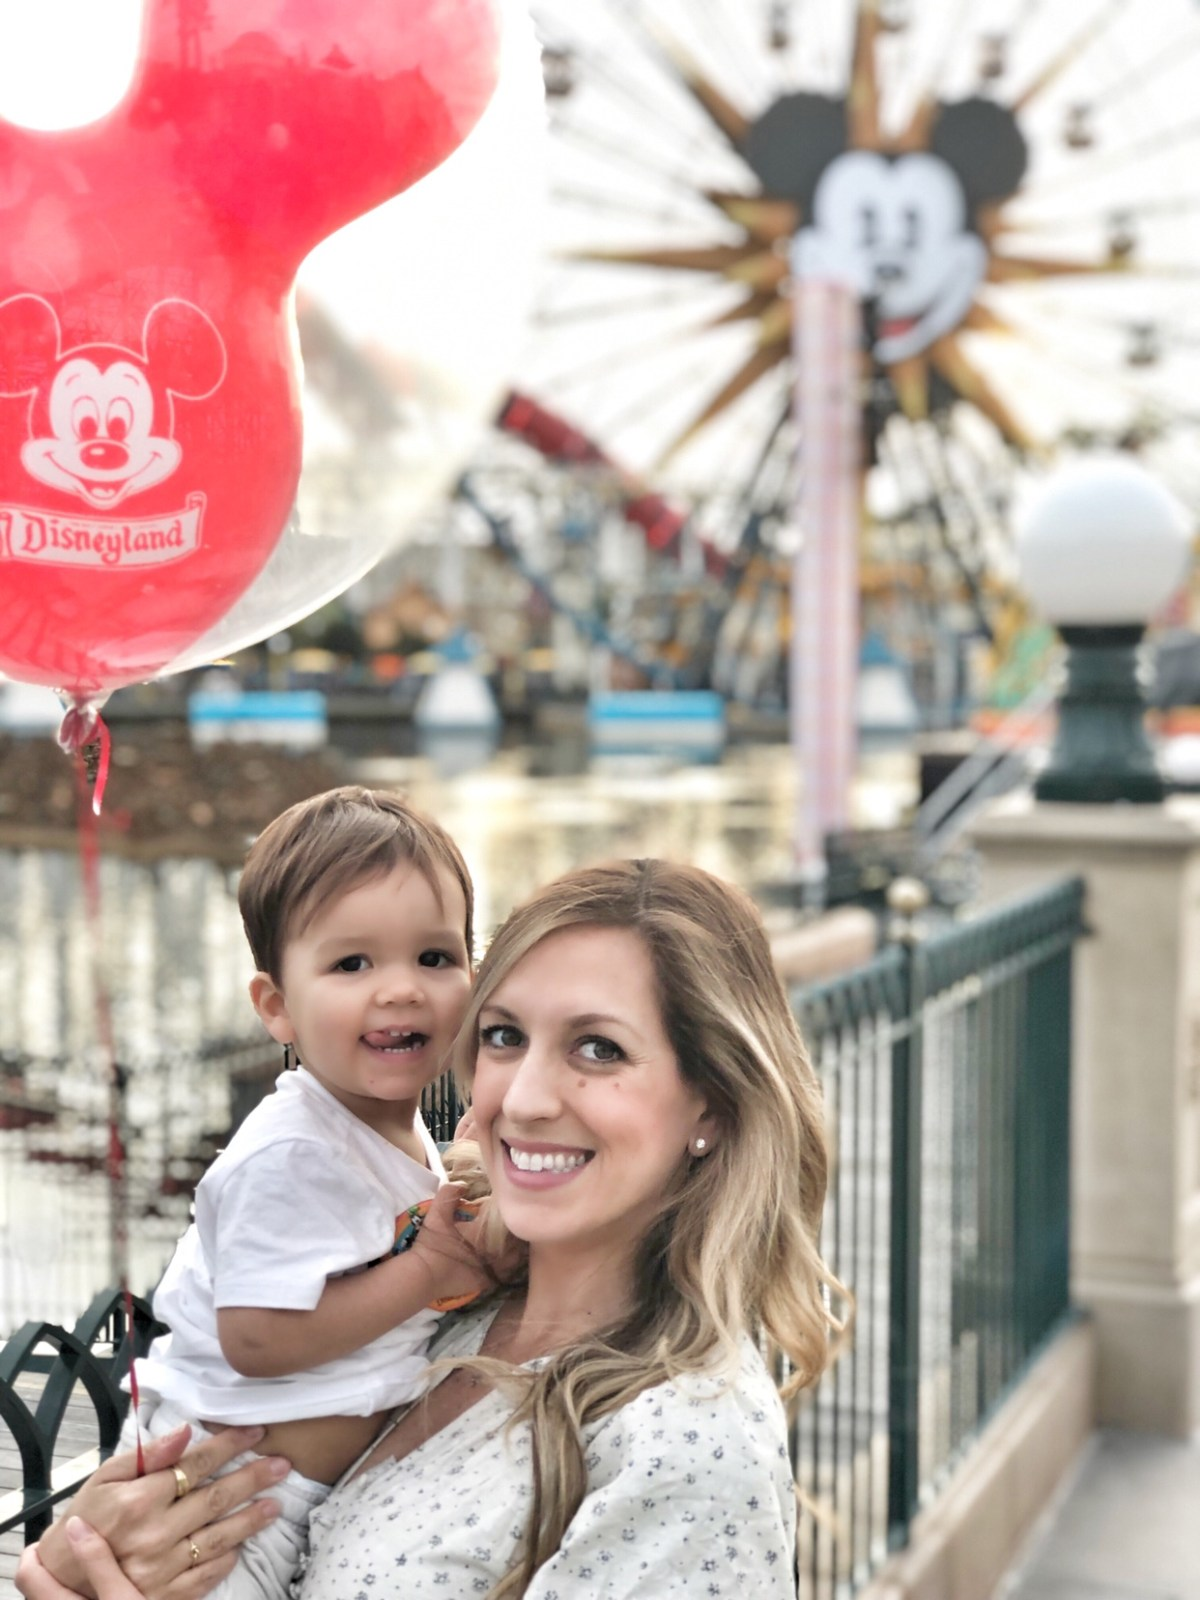 Disney rides to avoid with toddler